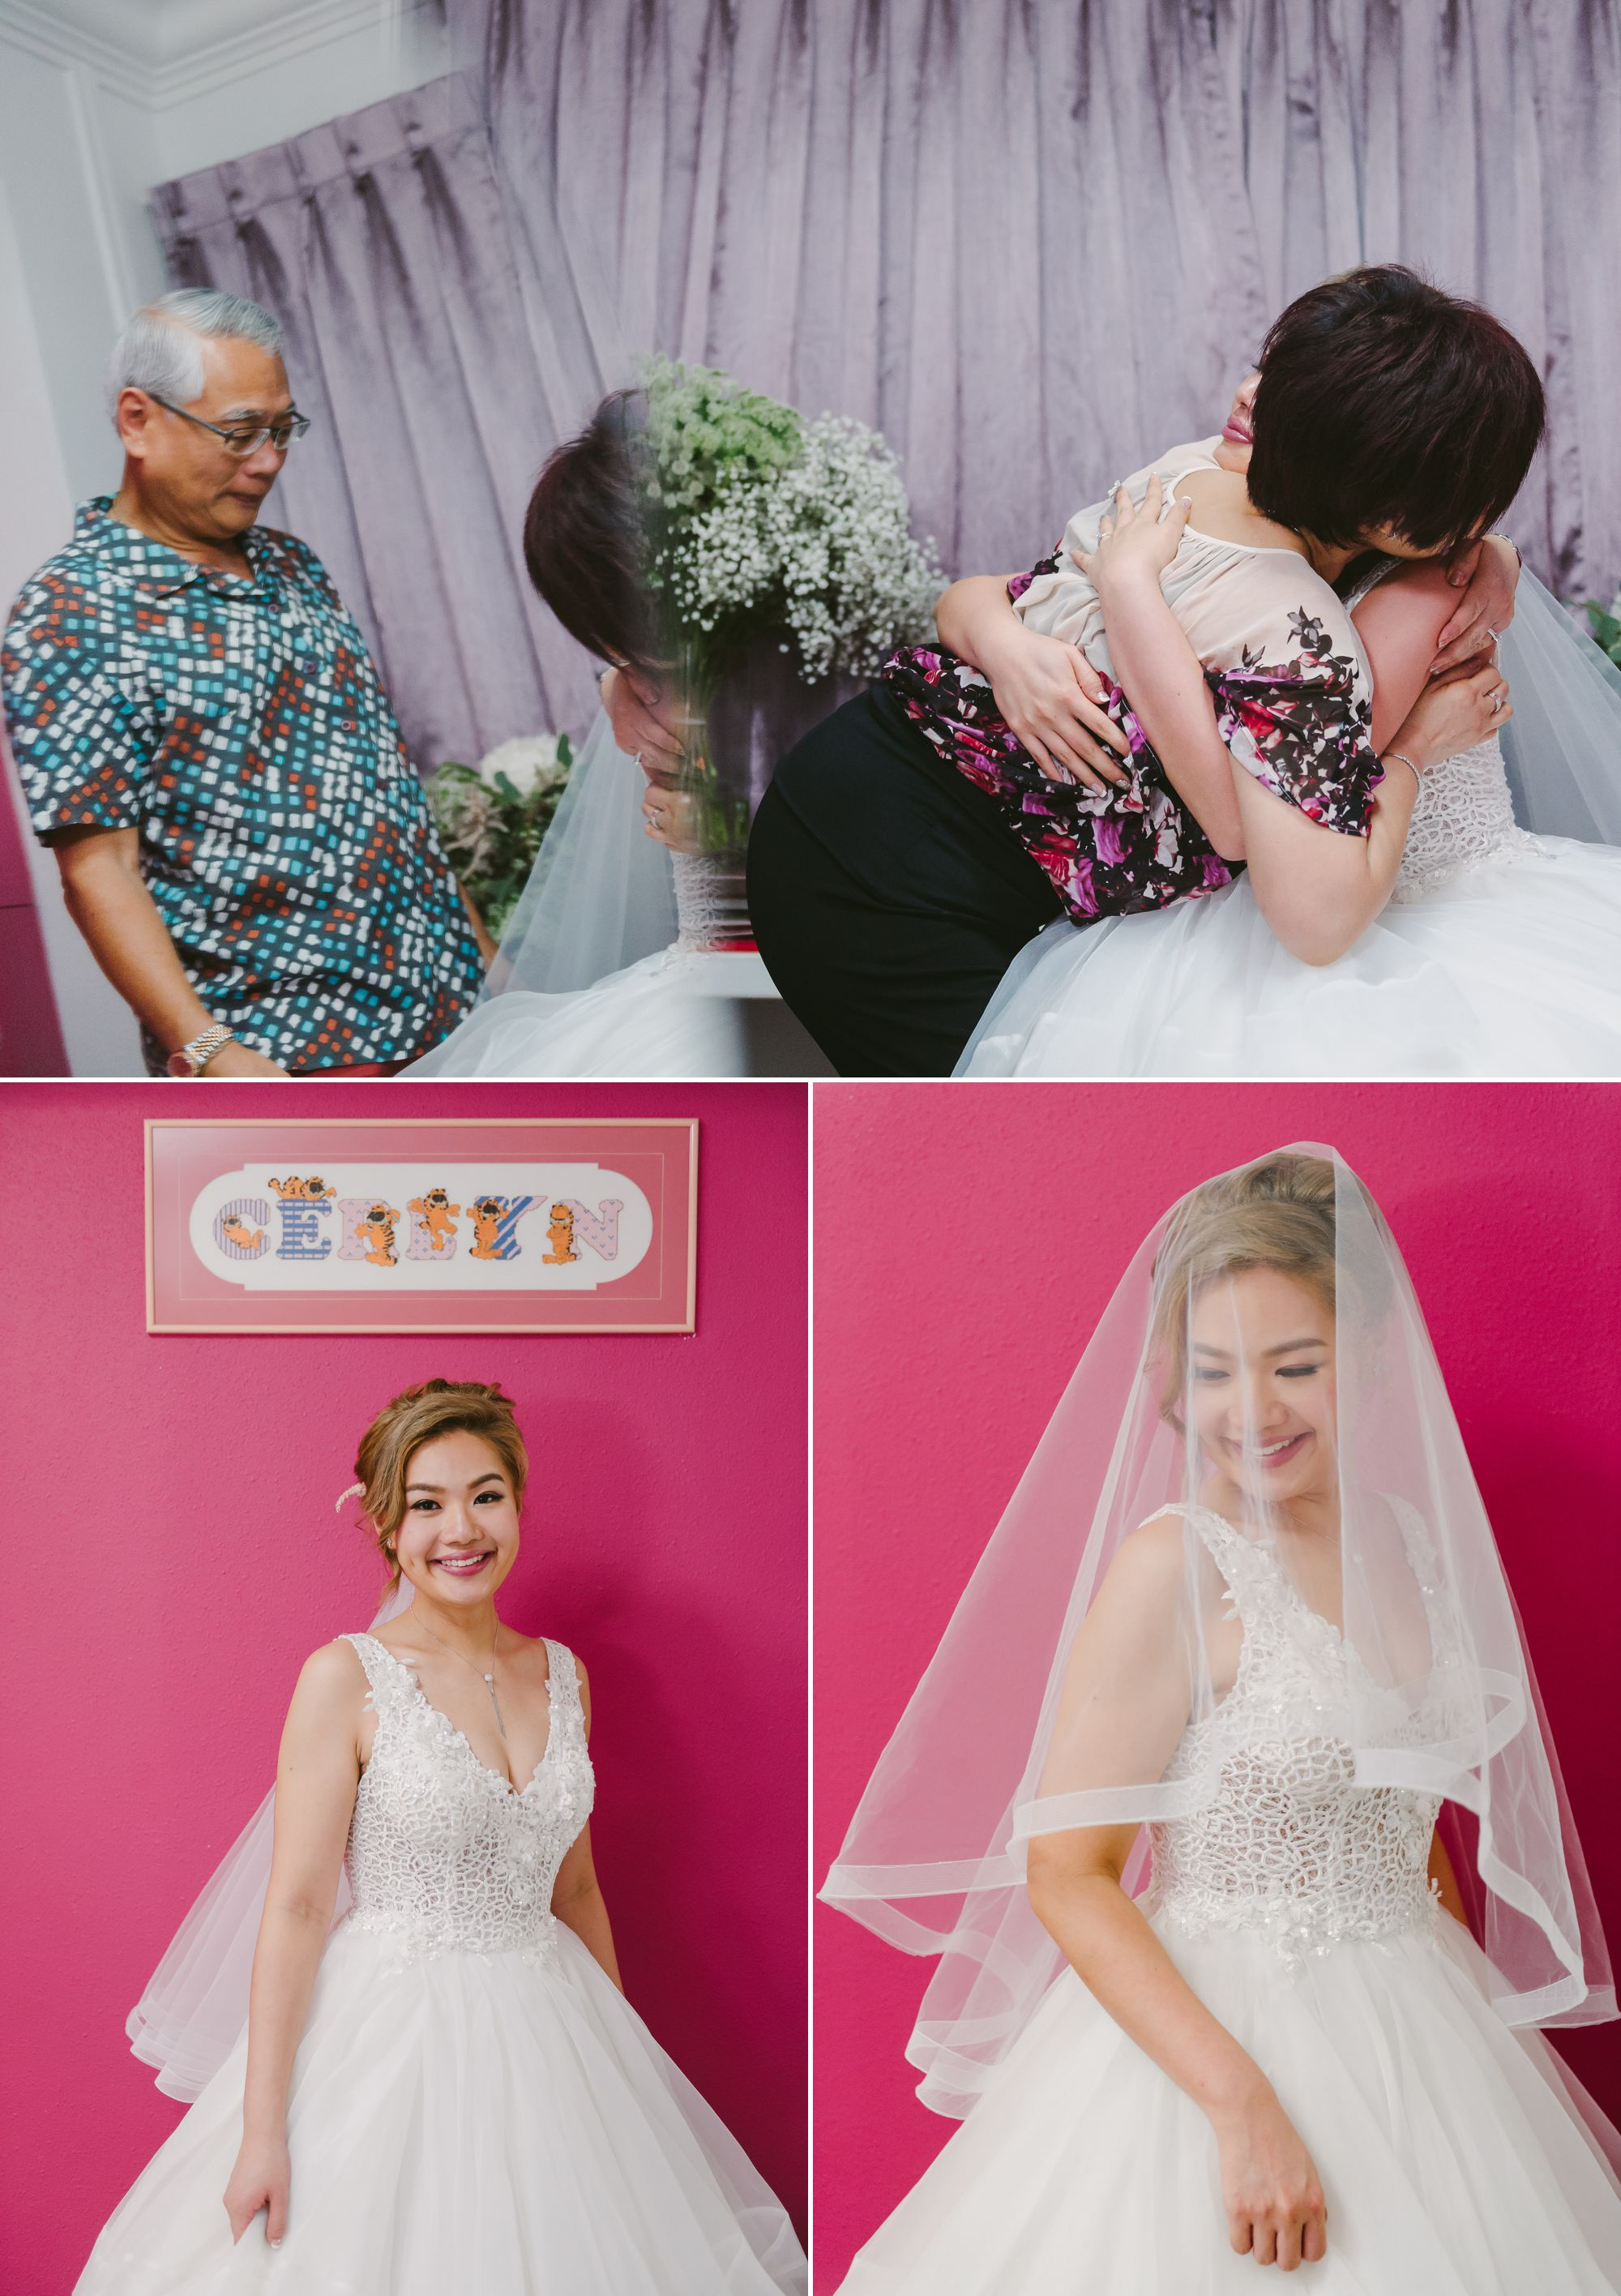 wedding_photographer_singapore 6.jpg